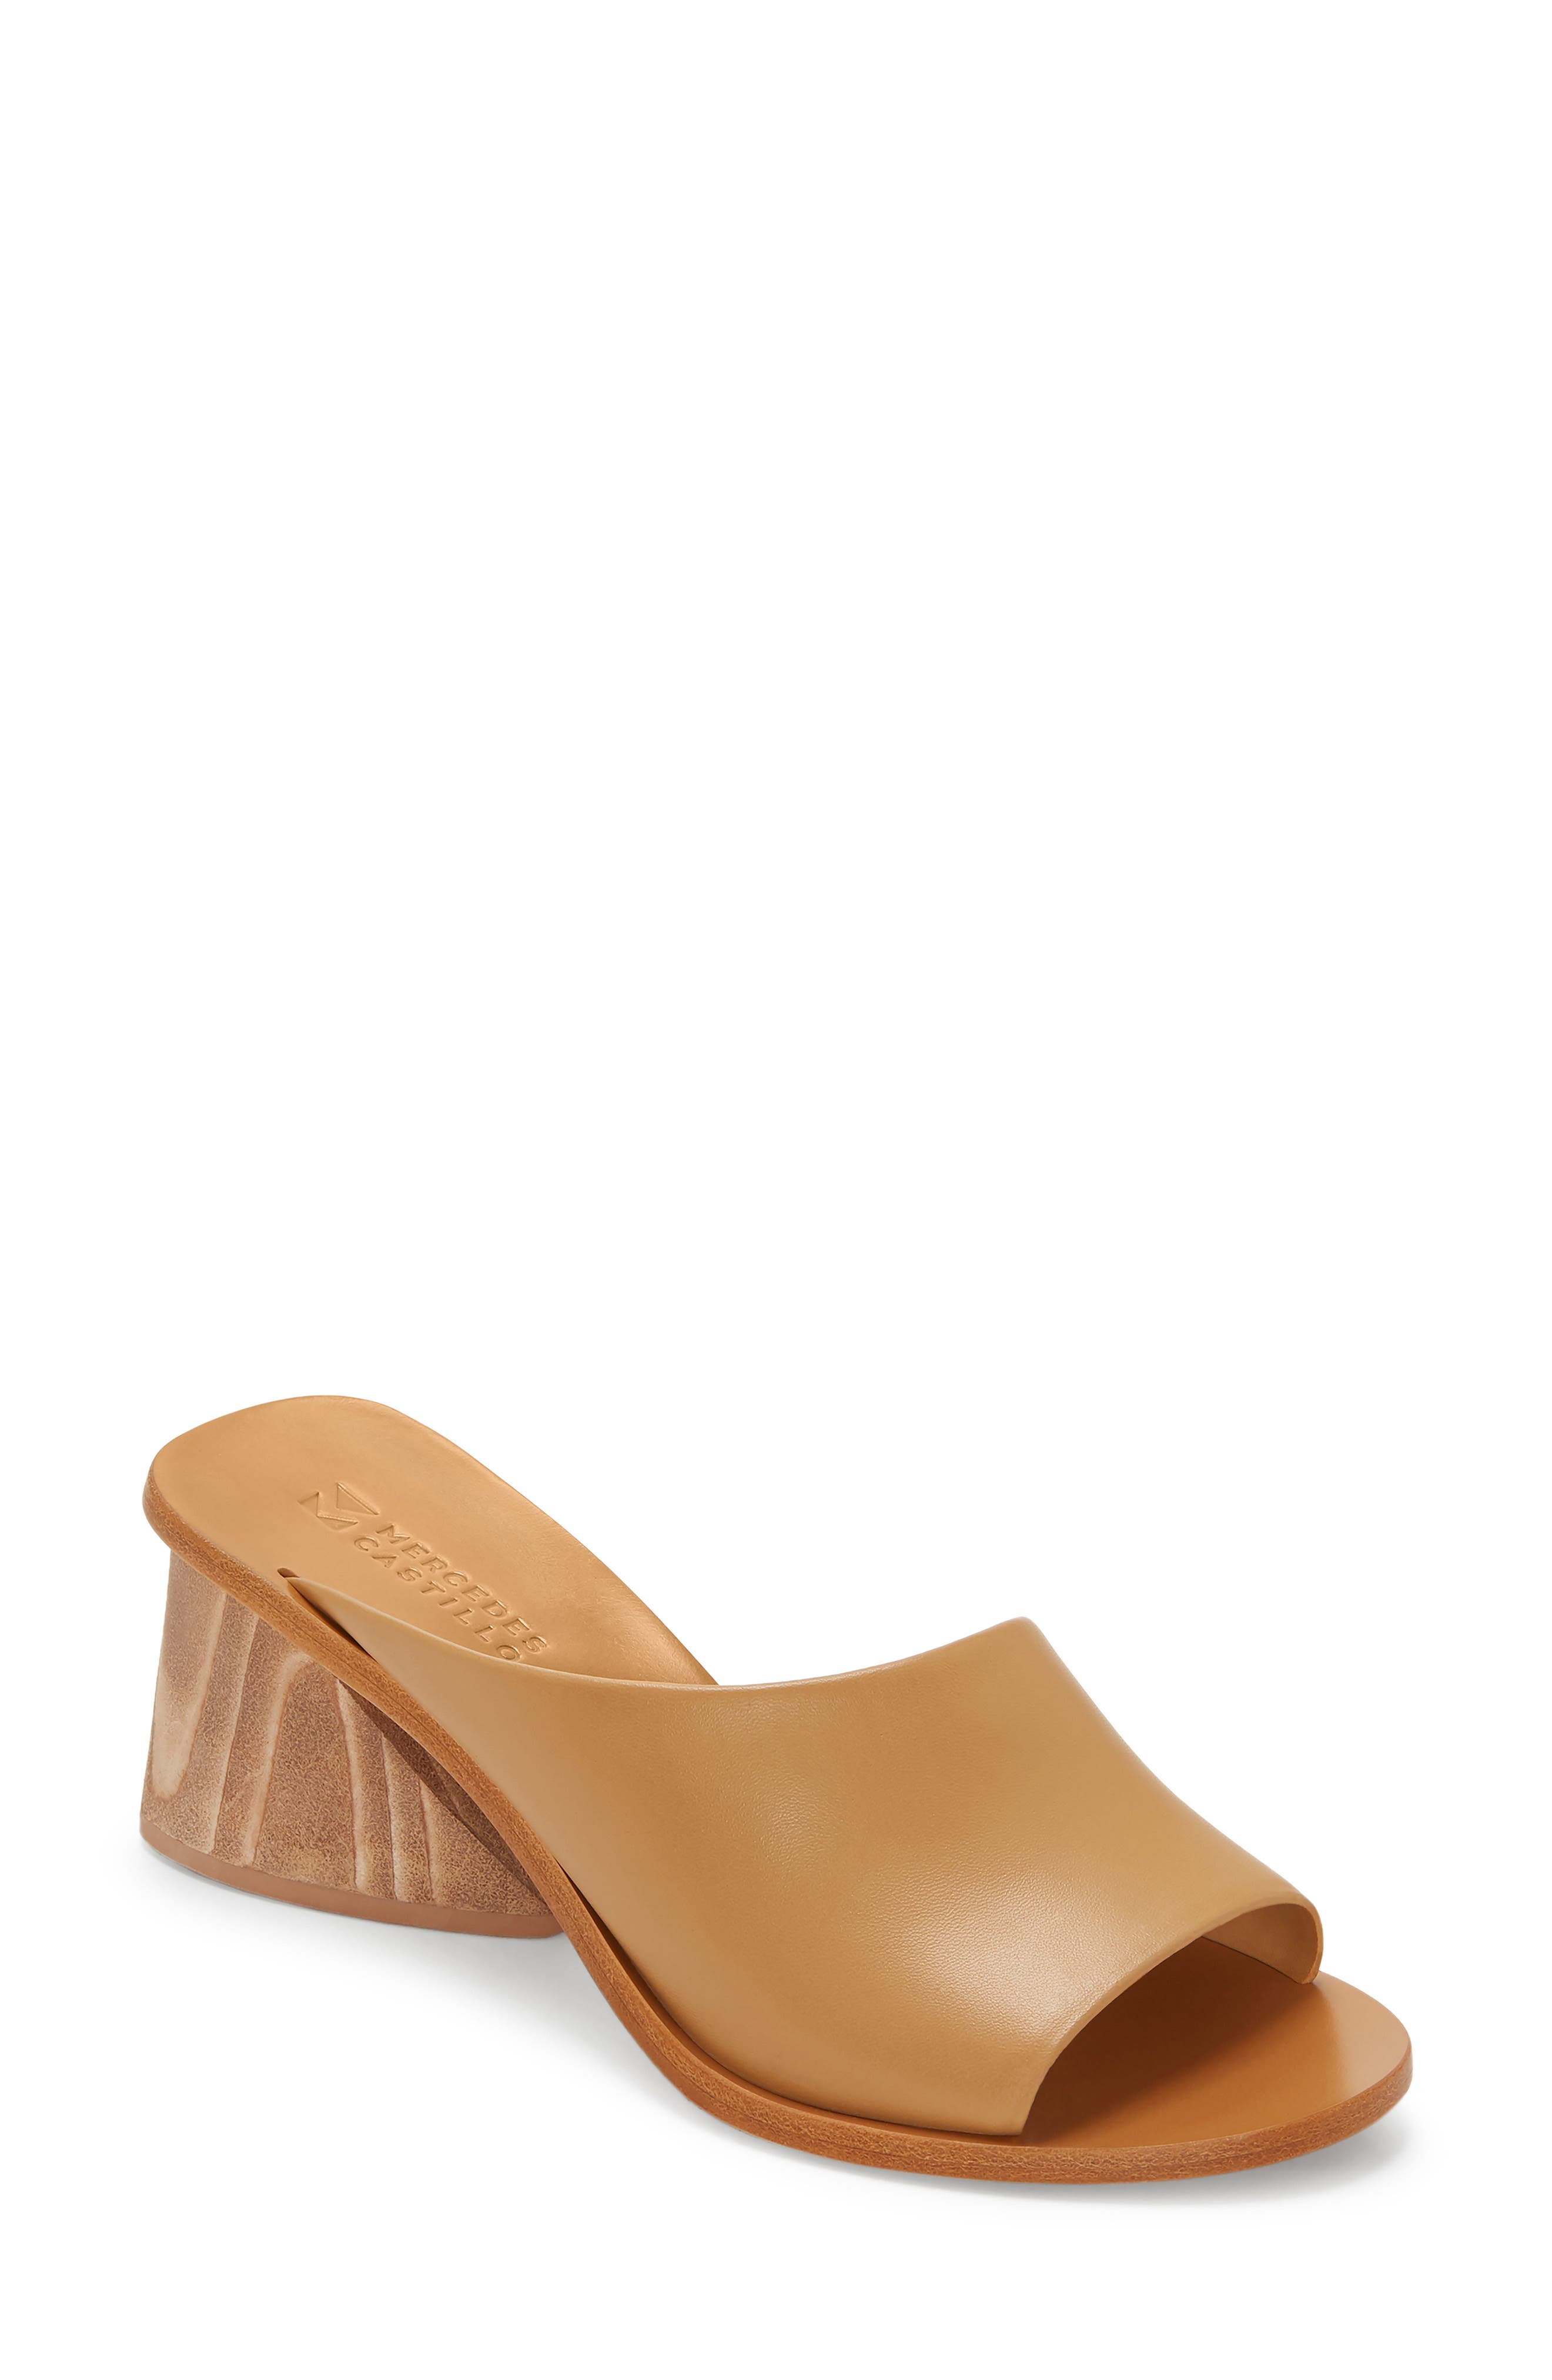 Izar Slide Sandal, Main, color, BLONDE